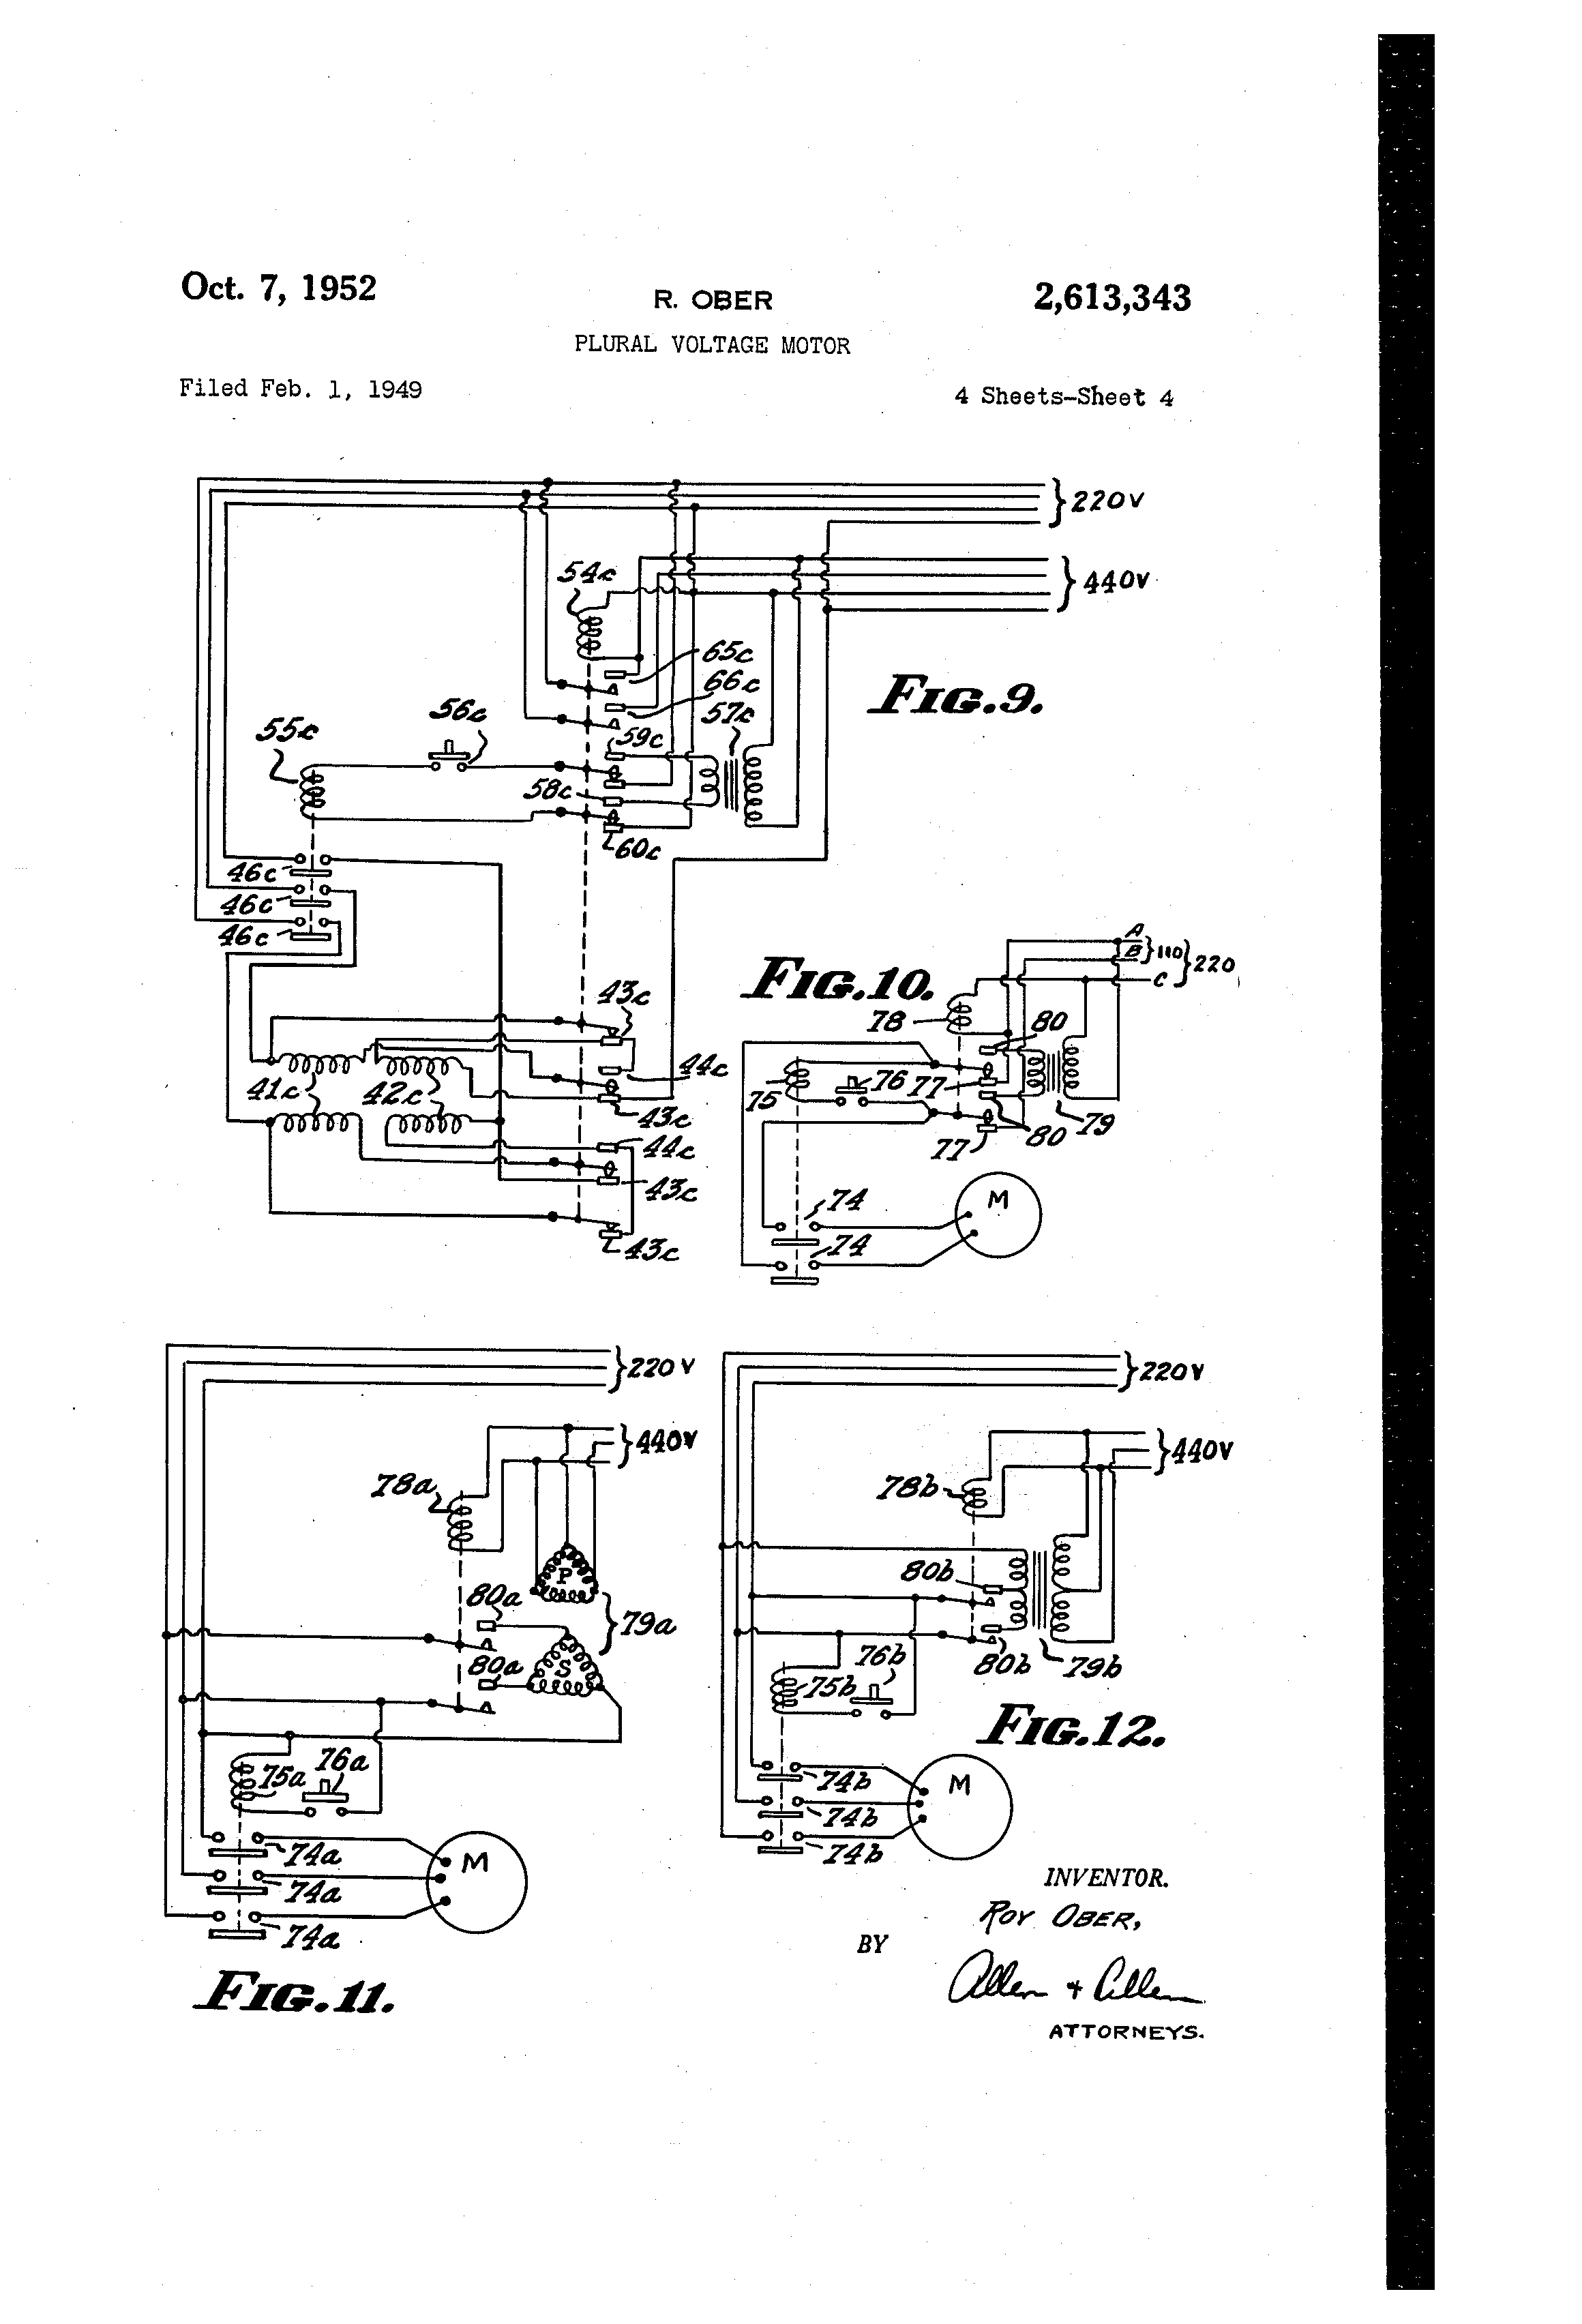 cnc stepper motor wiring diagram wiring diagrams per motor wiring diagram schematics and diagrams